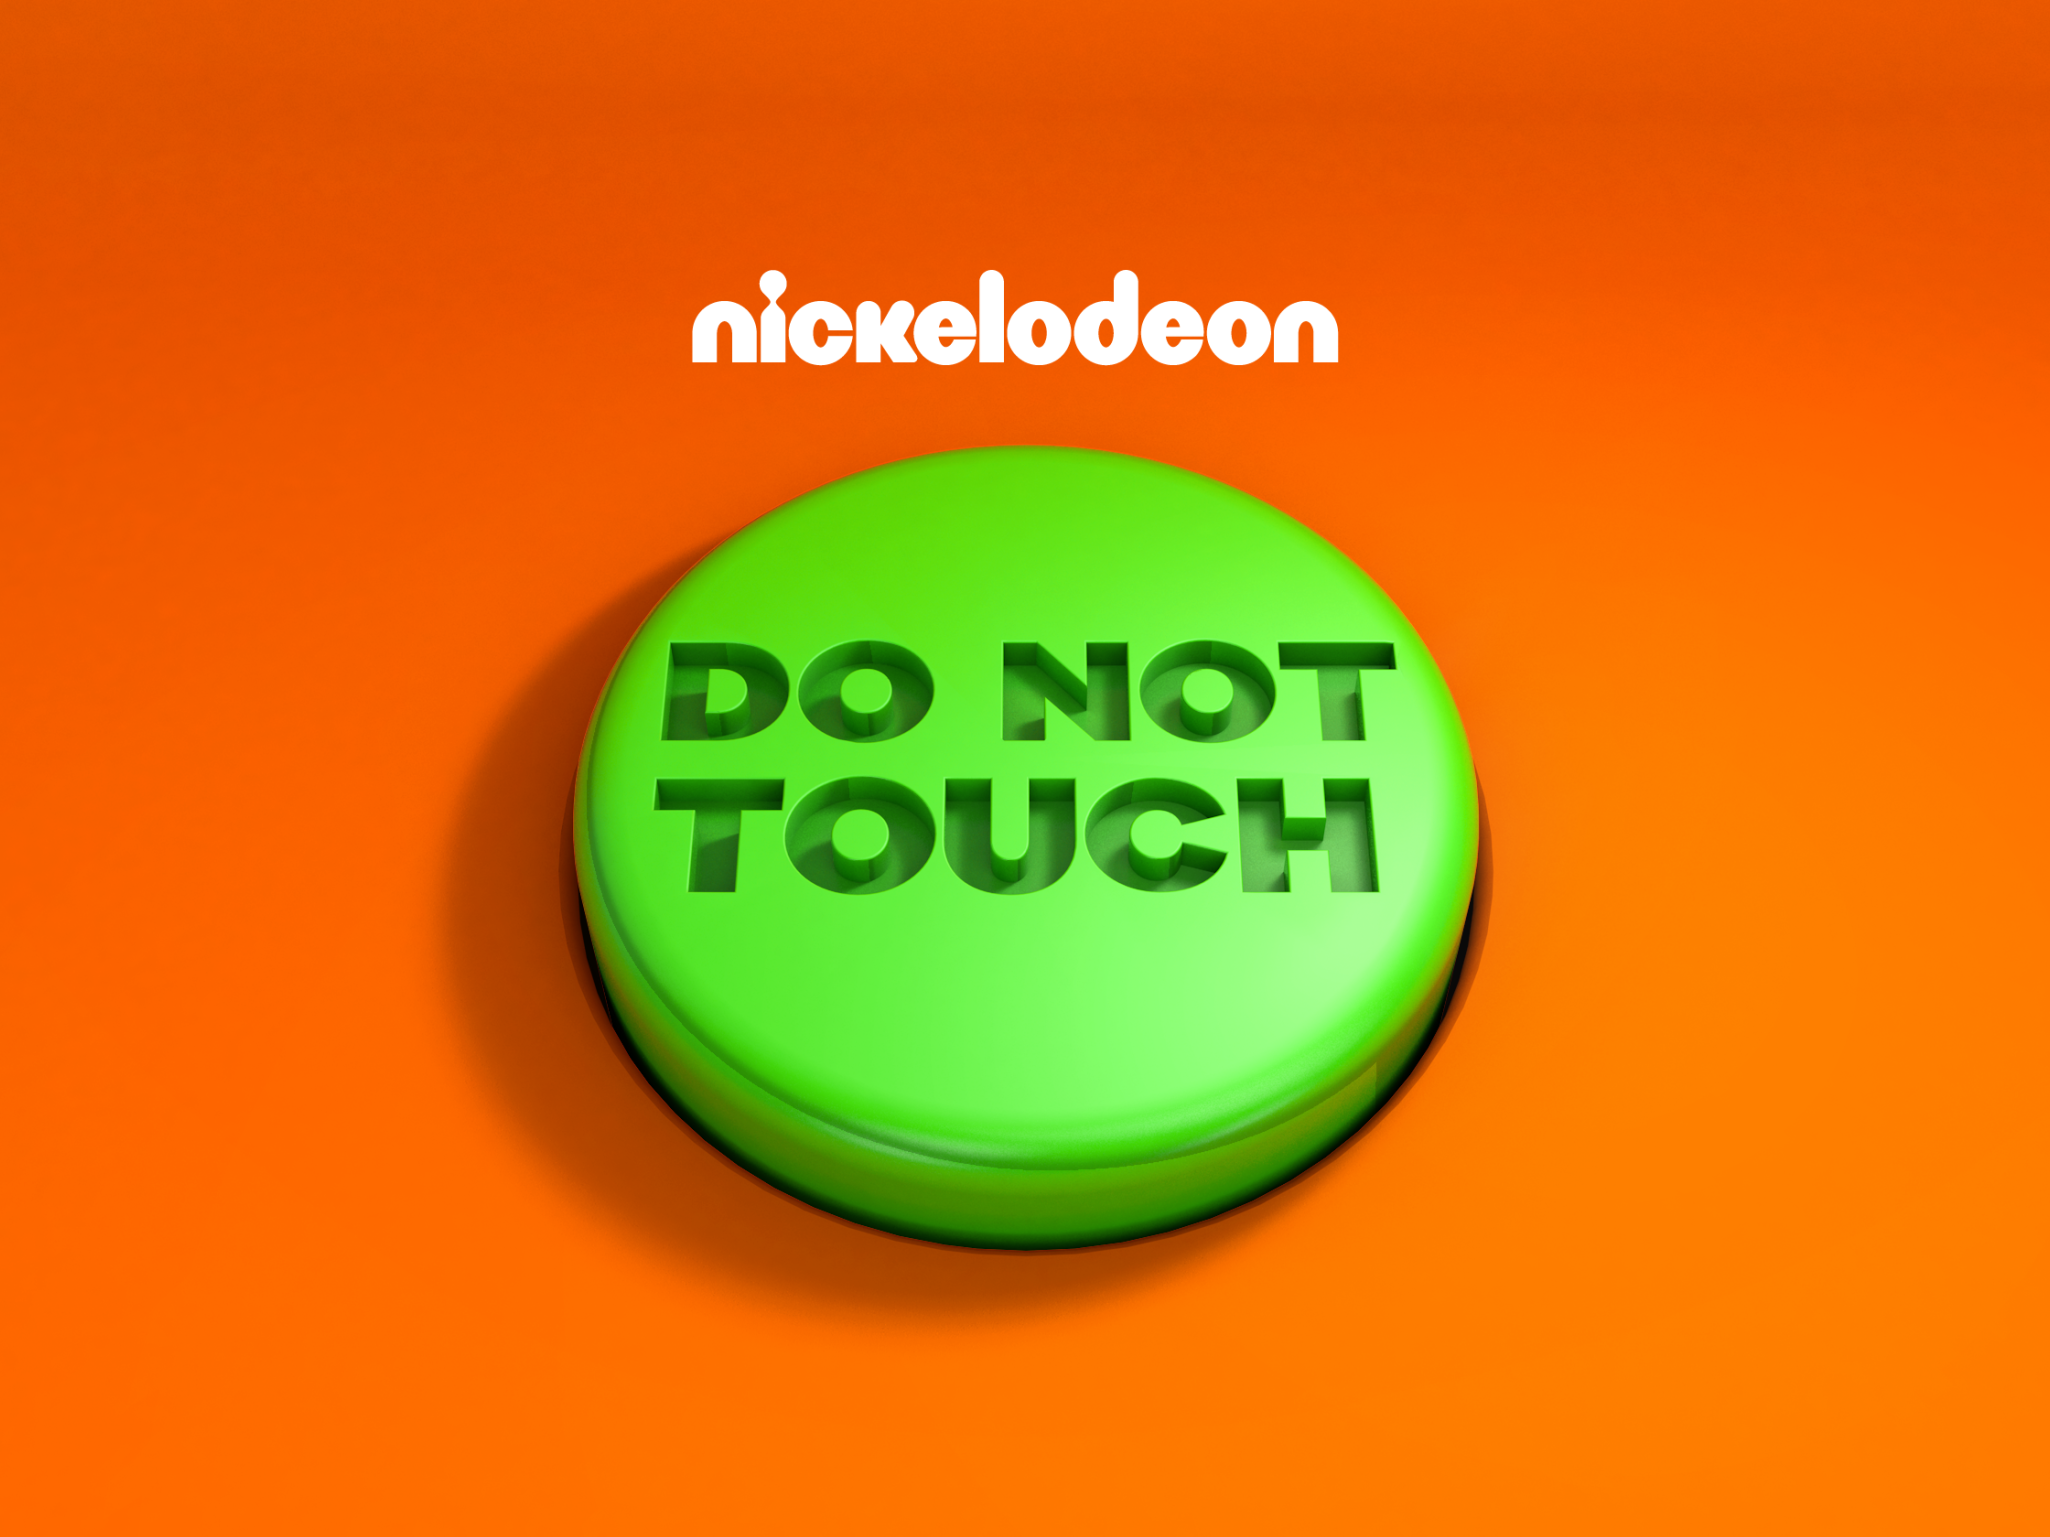 Thumbnail for Do Not Touch by Nickelodeon